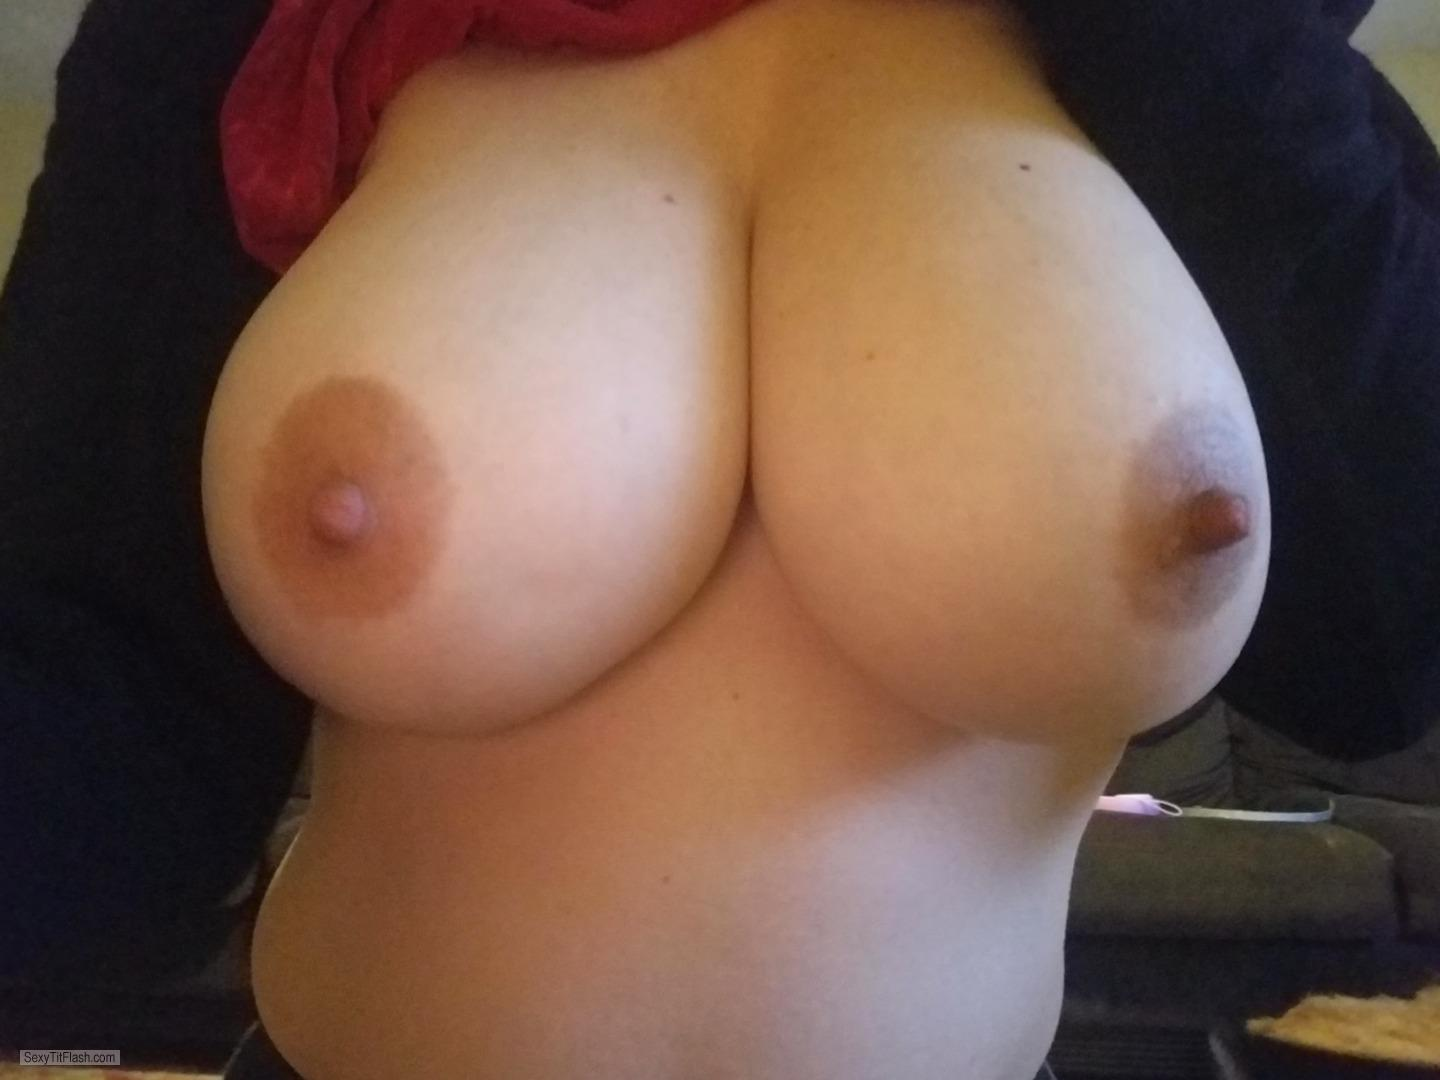 Tit Flash: My Very Small Tits (Selfie) - Horny Slut from United Kingdom